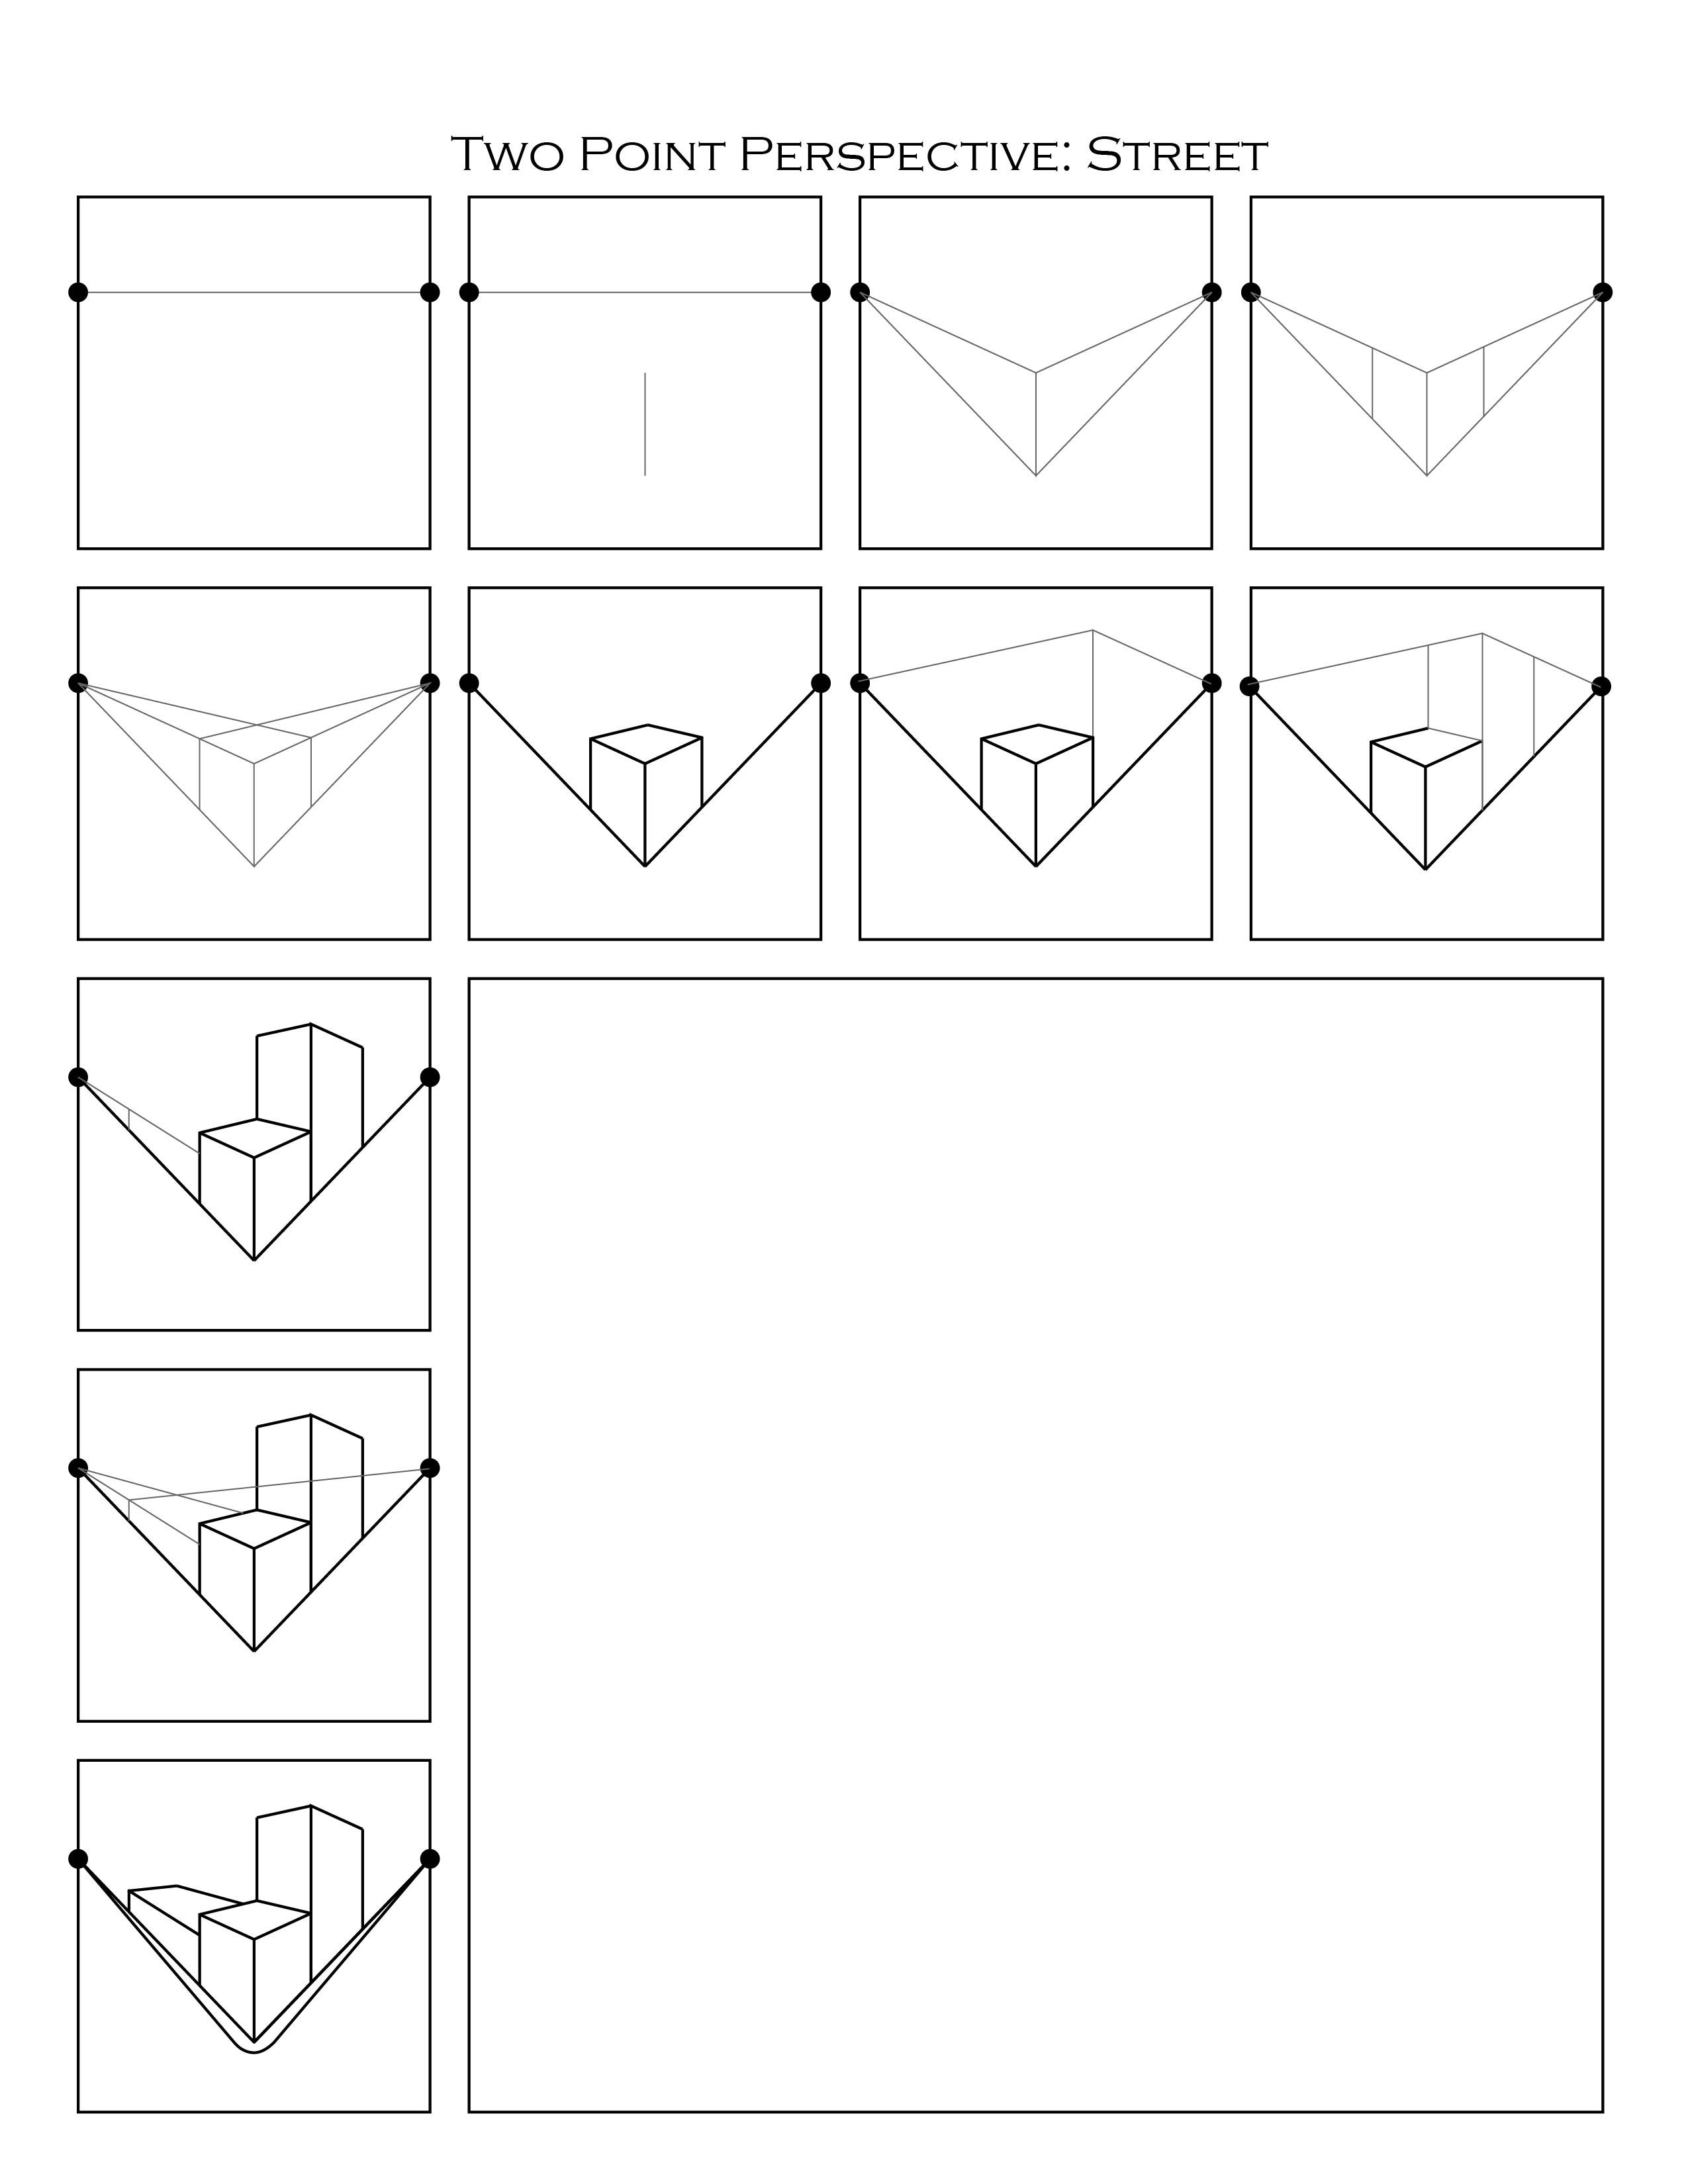 Two Point Perspective Question